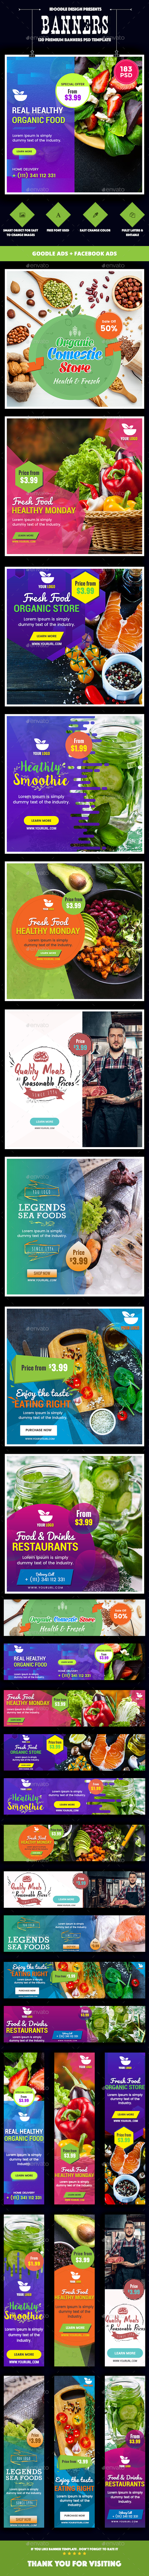 Special Bundle - Food & Restaurant Banners Ad - 150 PSD - Banners & Ads Web Elements